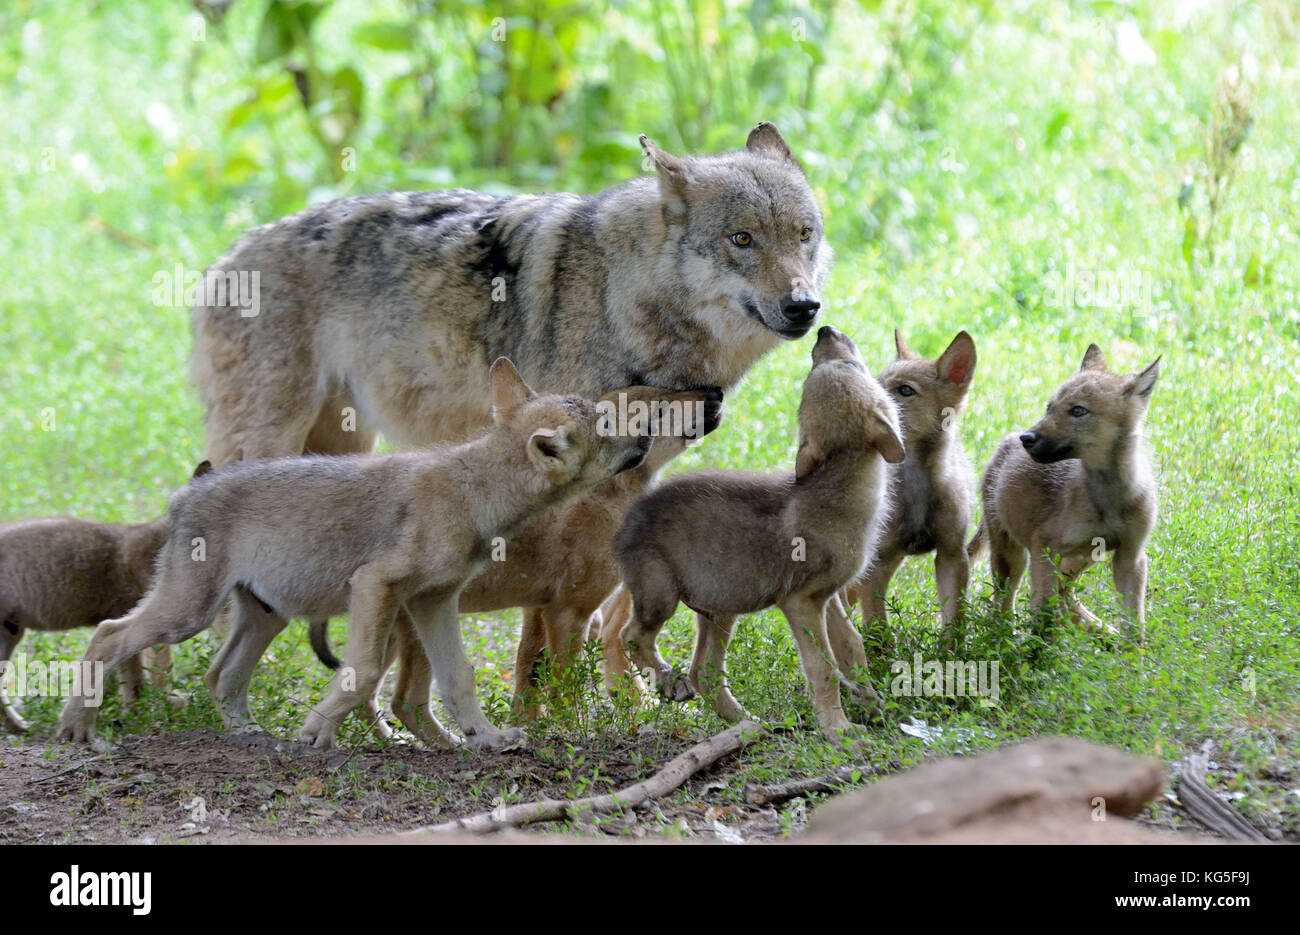 Wolves, Canis lupus, female wolf, young animals, Stock Photo